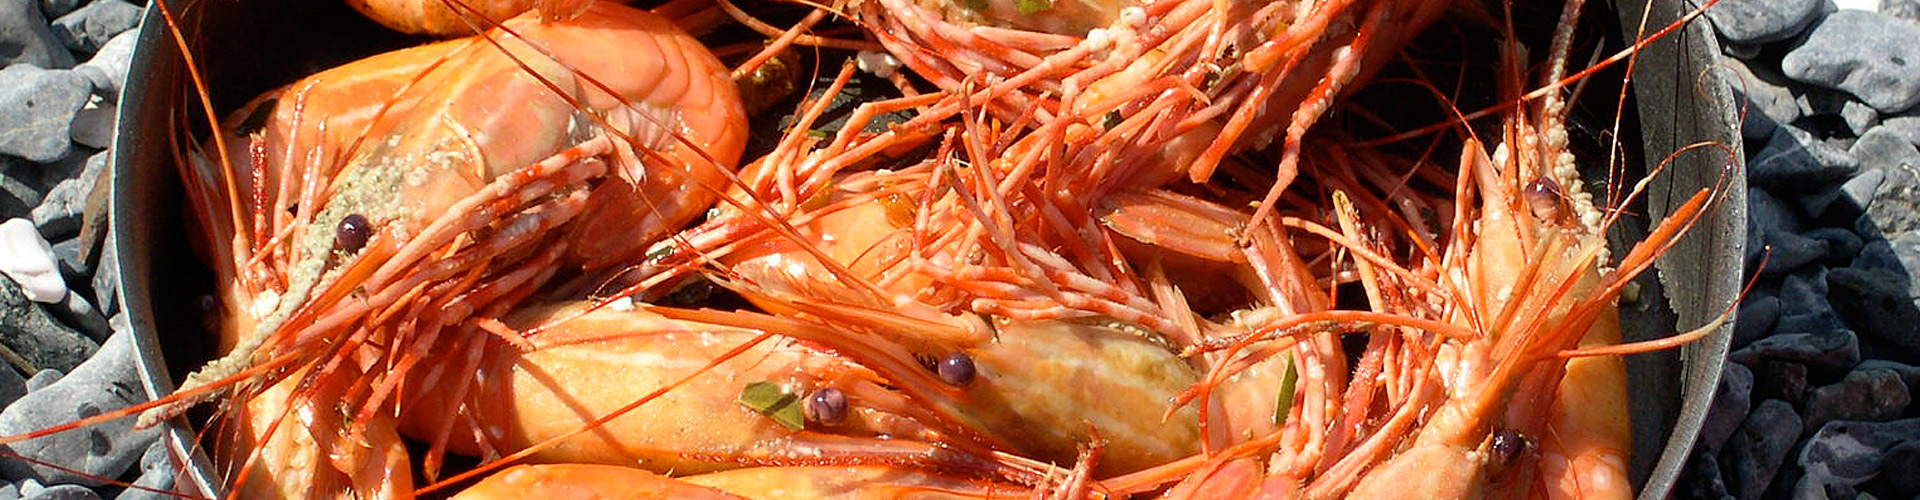 Alaska Tiger Prawns Shrimp in Pot at Beach Cookout The Lodge at Whale Pass